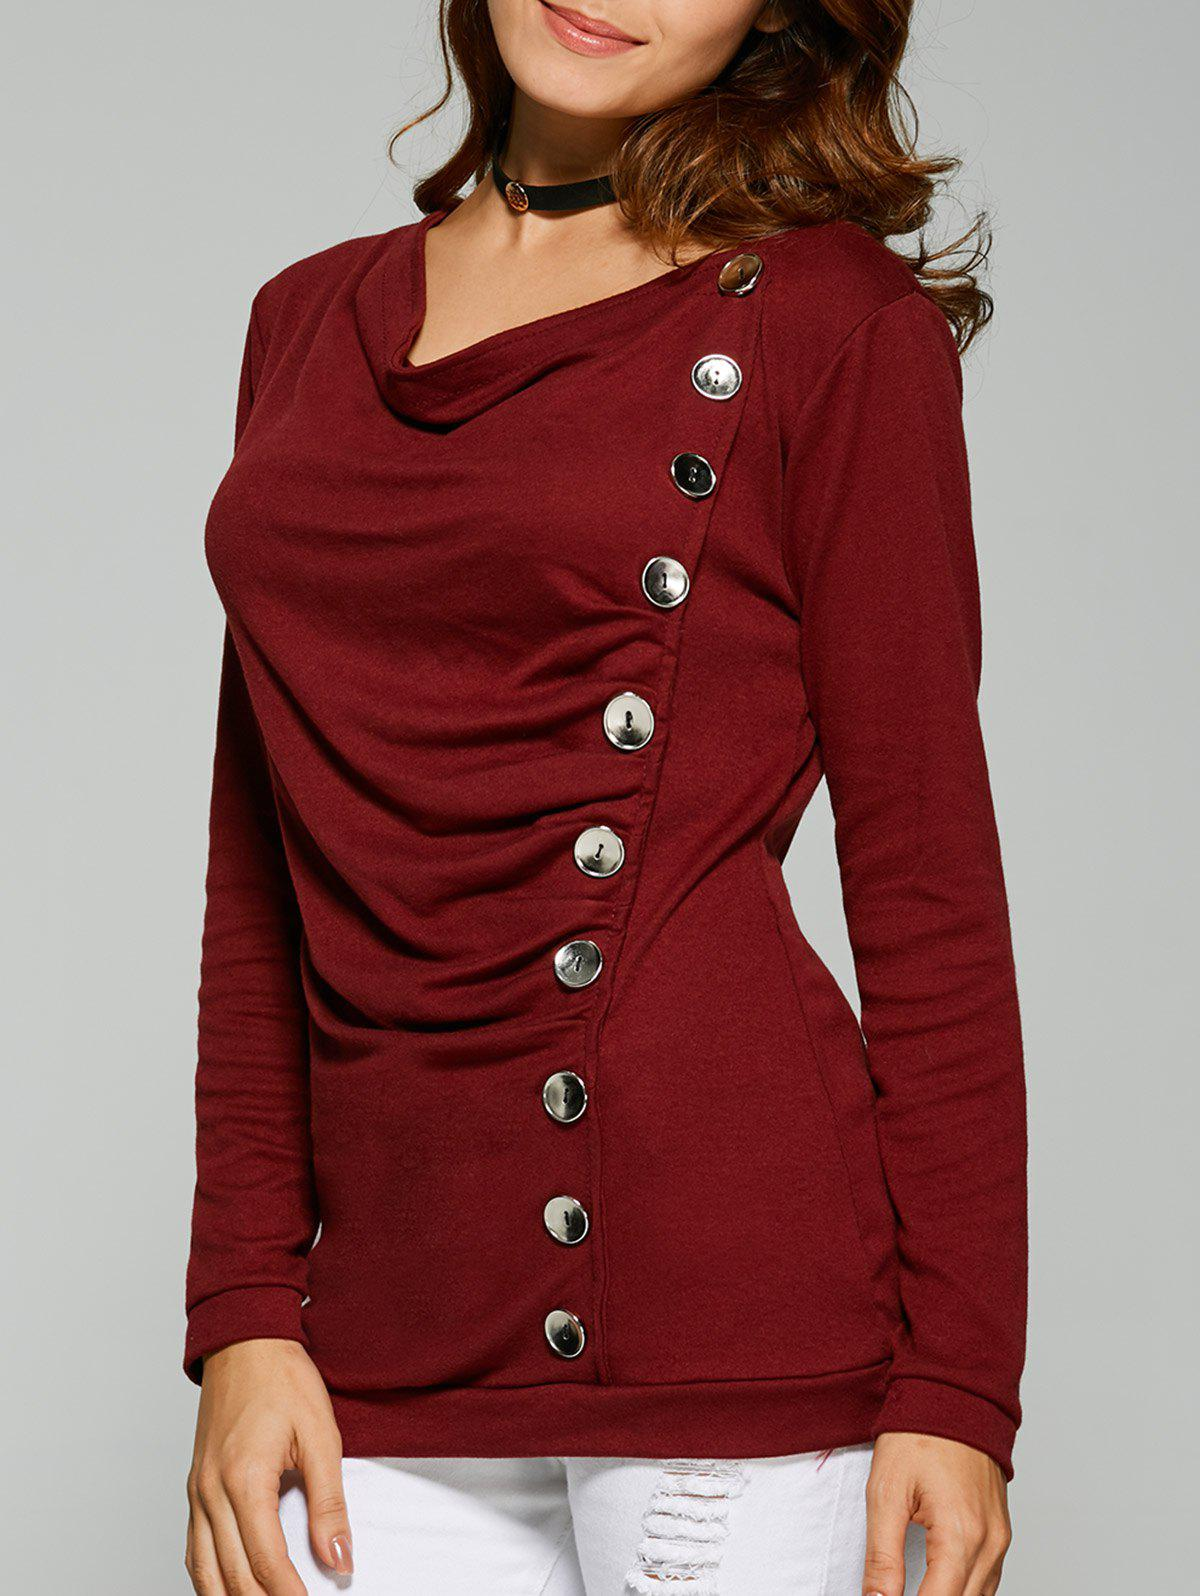 Ruched Button T-Shirt - WINE RED S